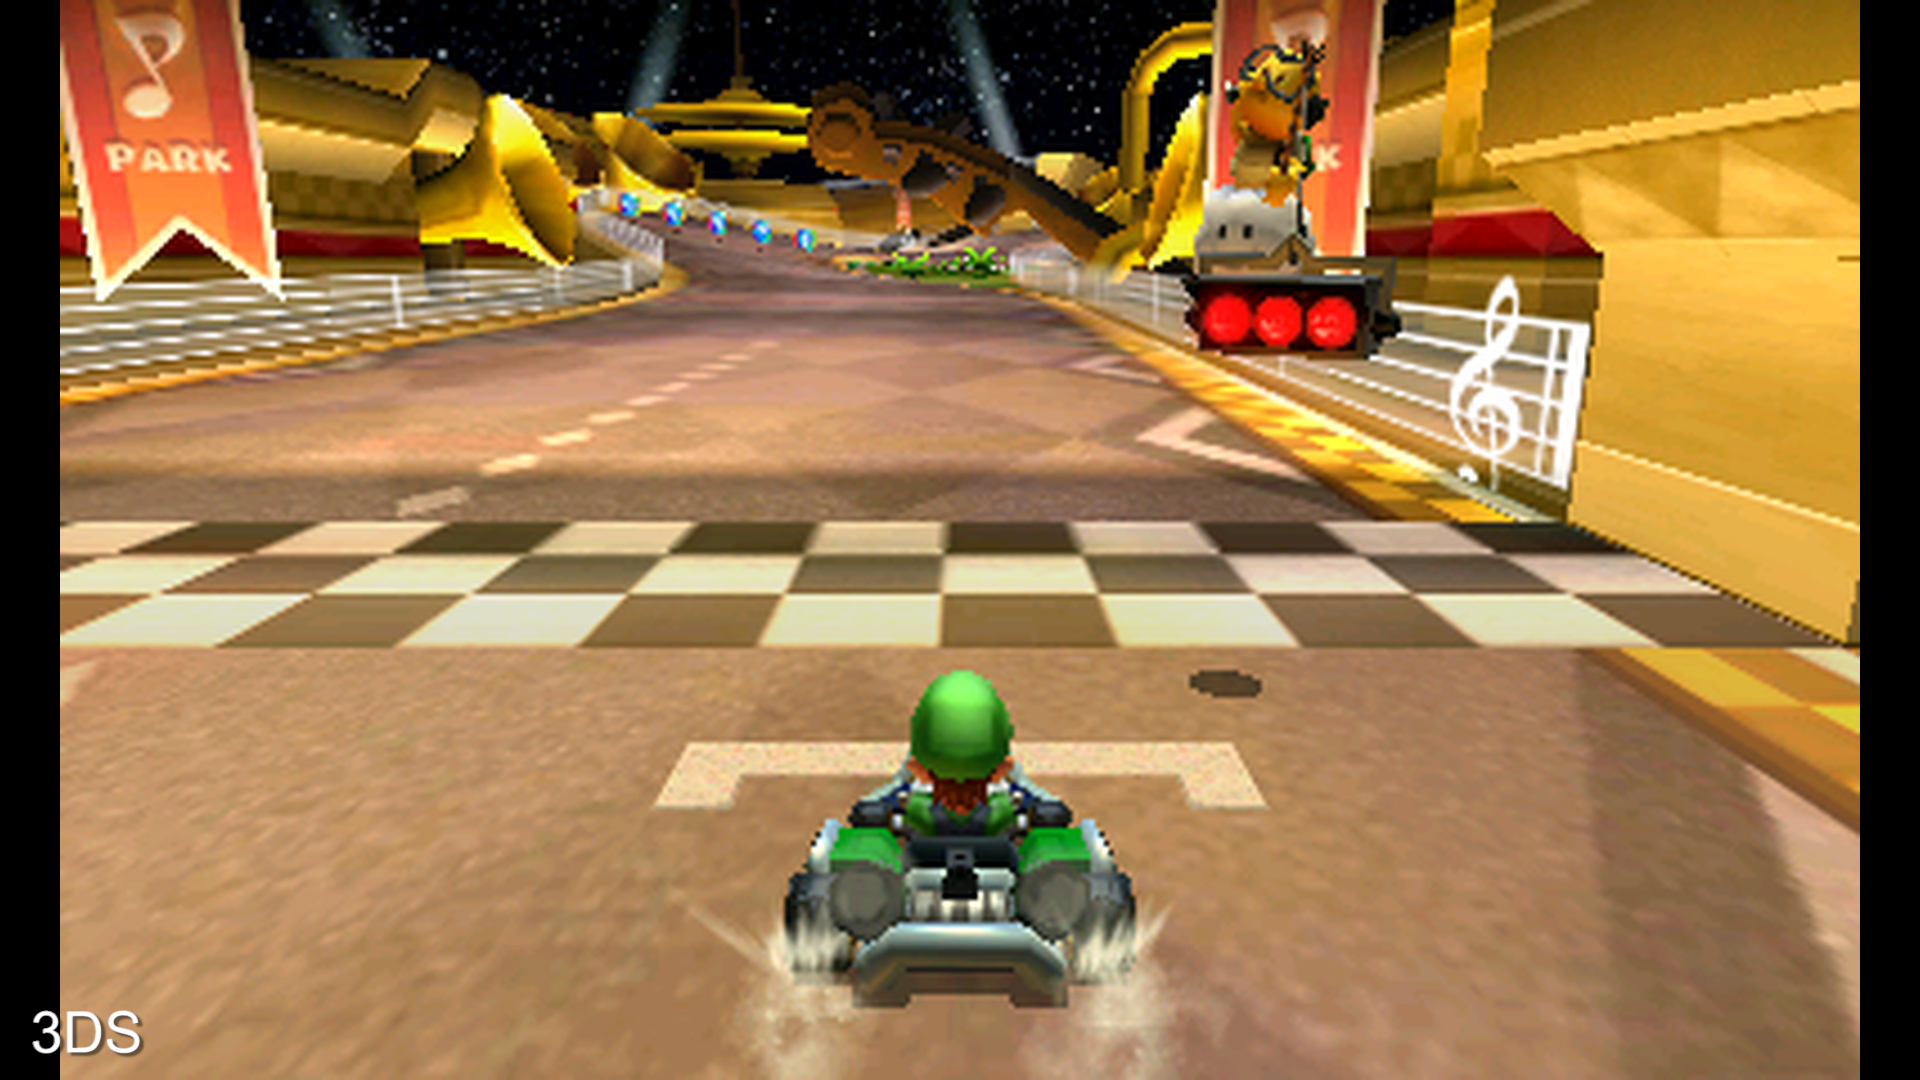 The six year gap between Mario Kart 7 and Mario Kart 8 Deluxe shows one of the most radical leaps in visual quality seen between two Nintendo handhelds.